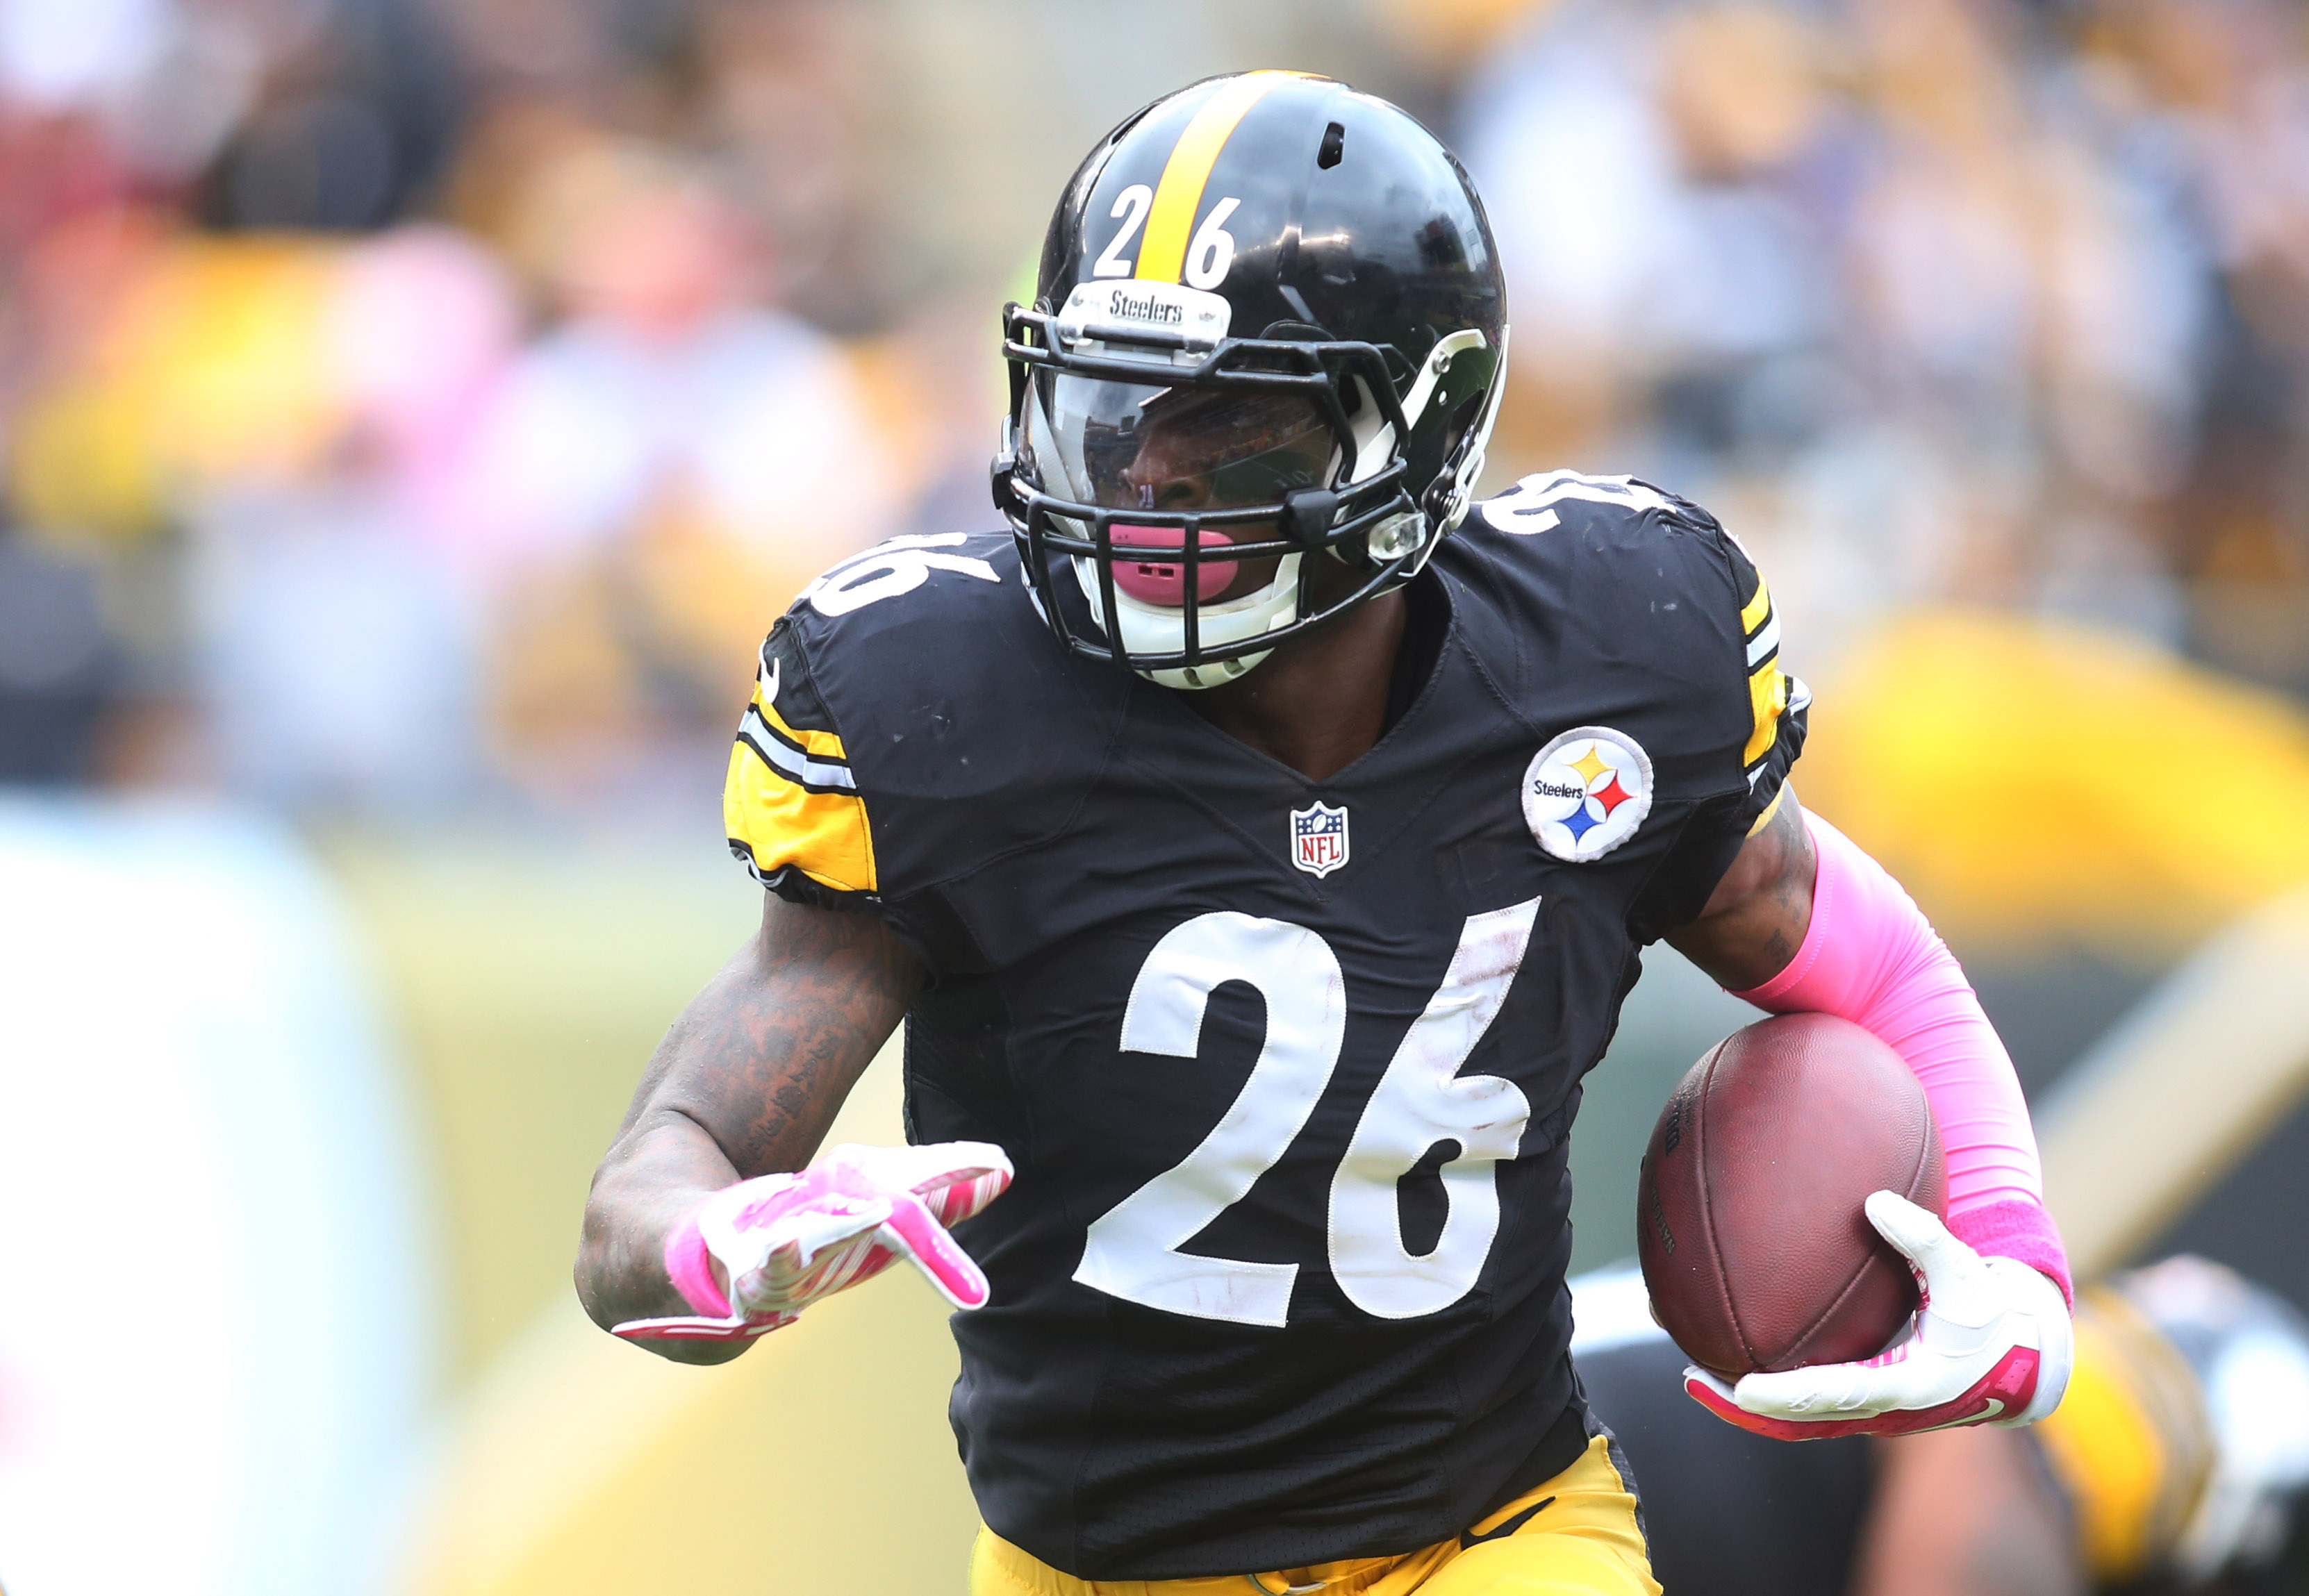 Le'Veon Bell says he will be 100% healthy for training camp after a season-ending knee injury in 2015